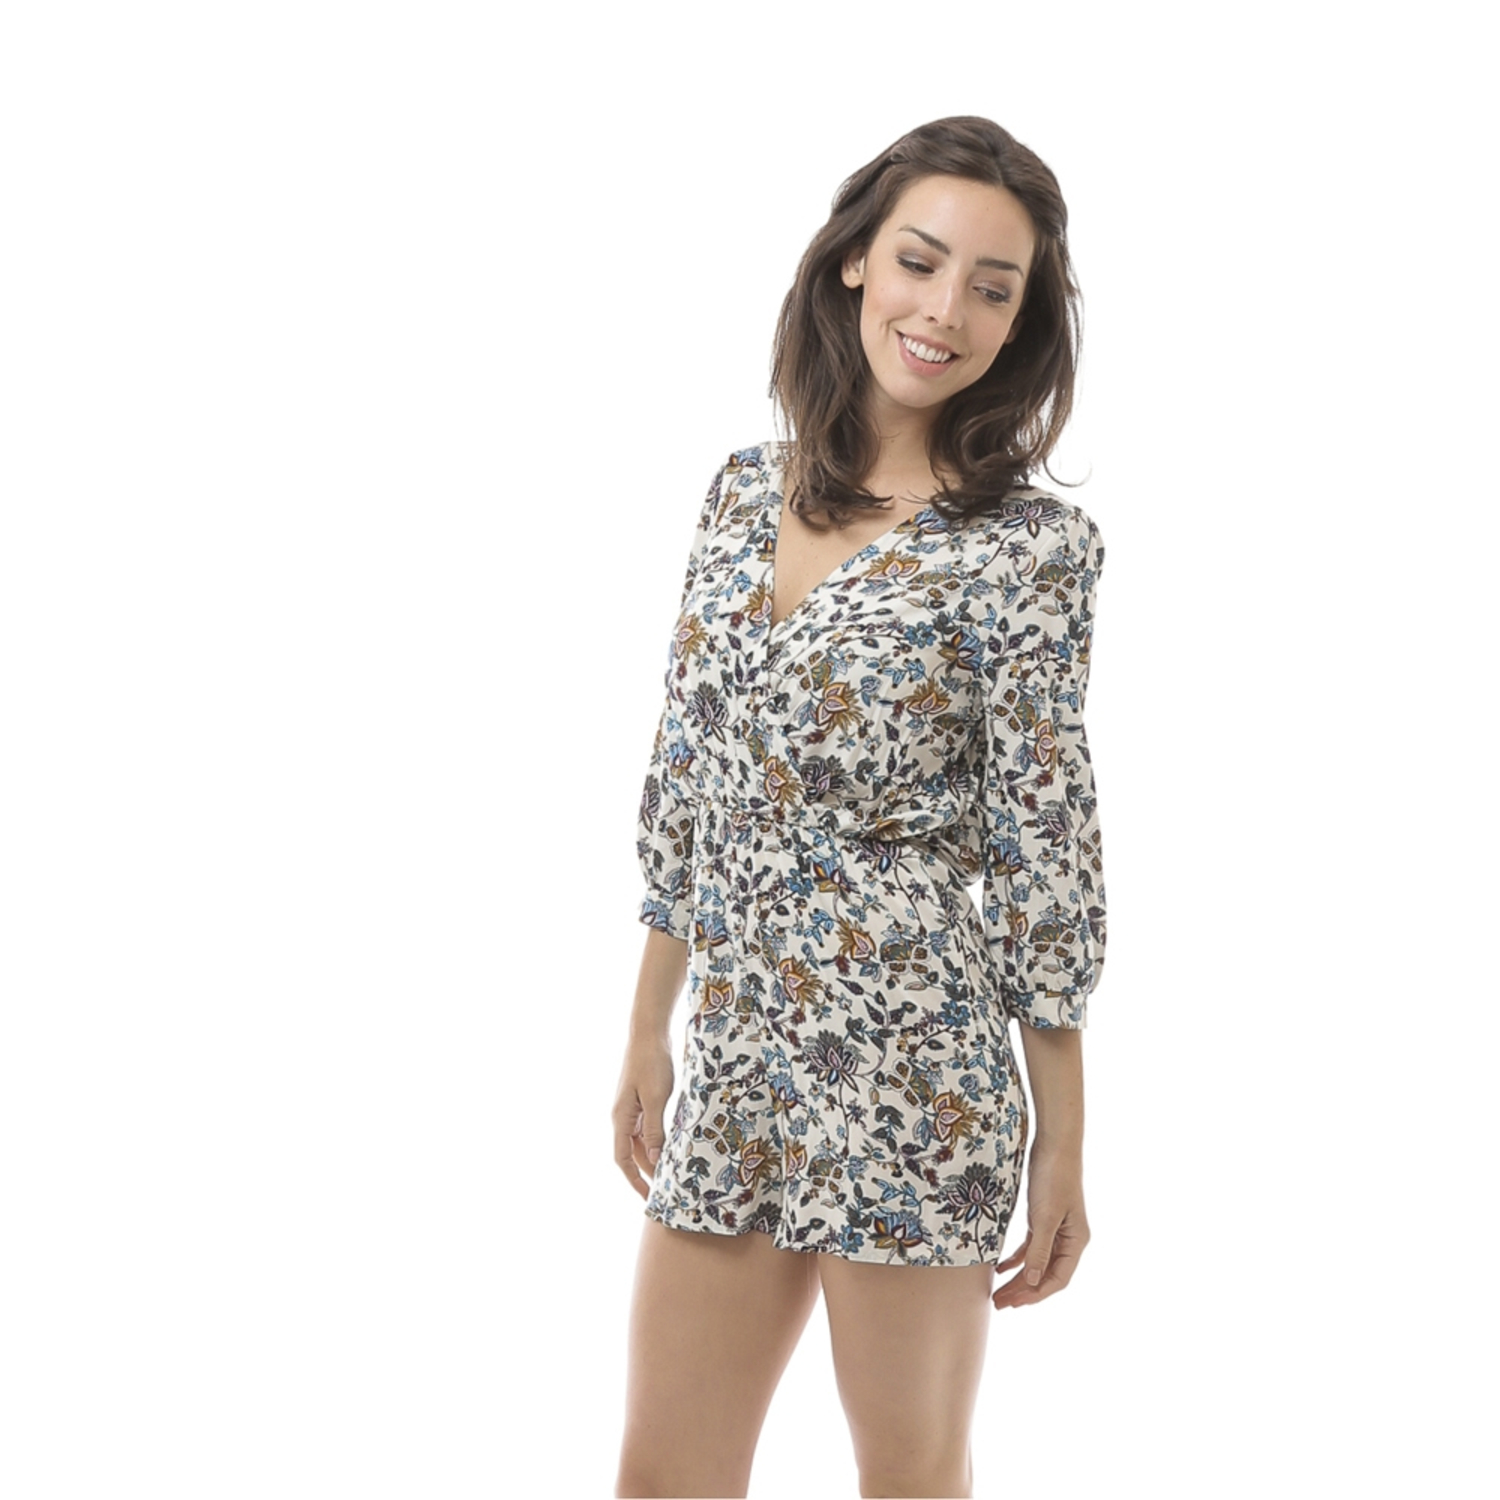 Women 3/4 Sleeve Floral Print Short Romper Size Small (S) - Colorful